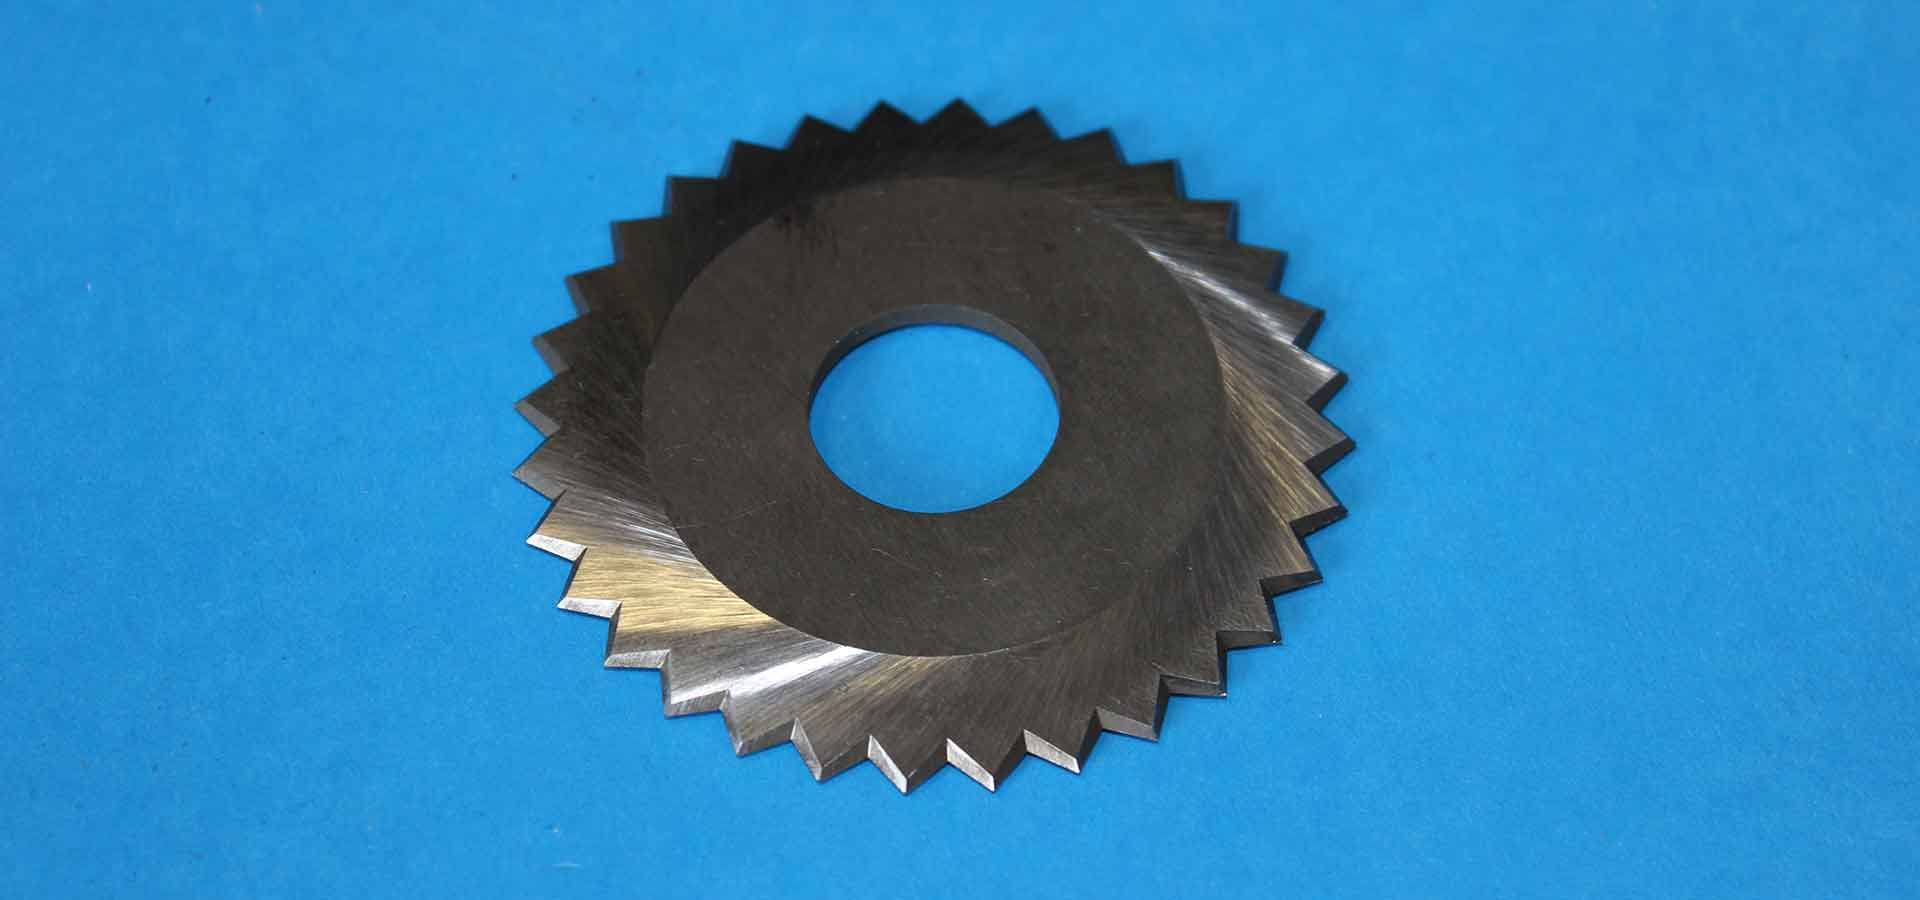 Circular and straight industrial blades